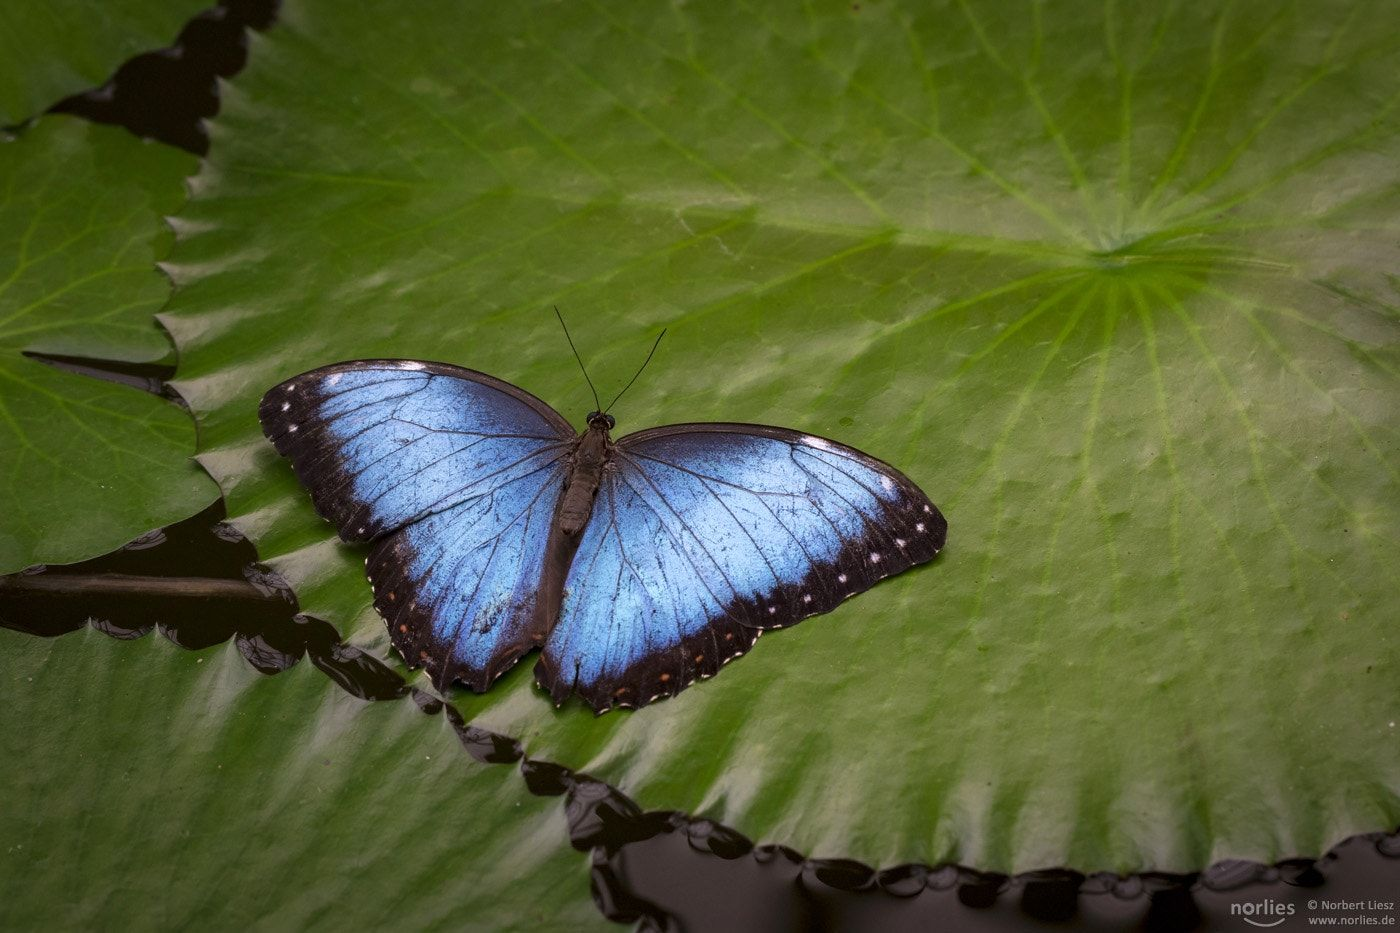 Blue On Green Himmelsfalter Morpho Peleides Butterfly Found This Beautiful Butterfly In The Exhibition On The Botanic Garden In Augsburg Ther Schmetterling